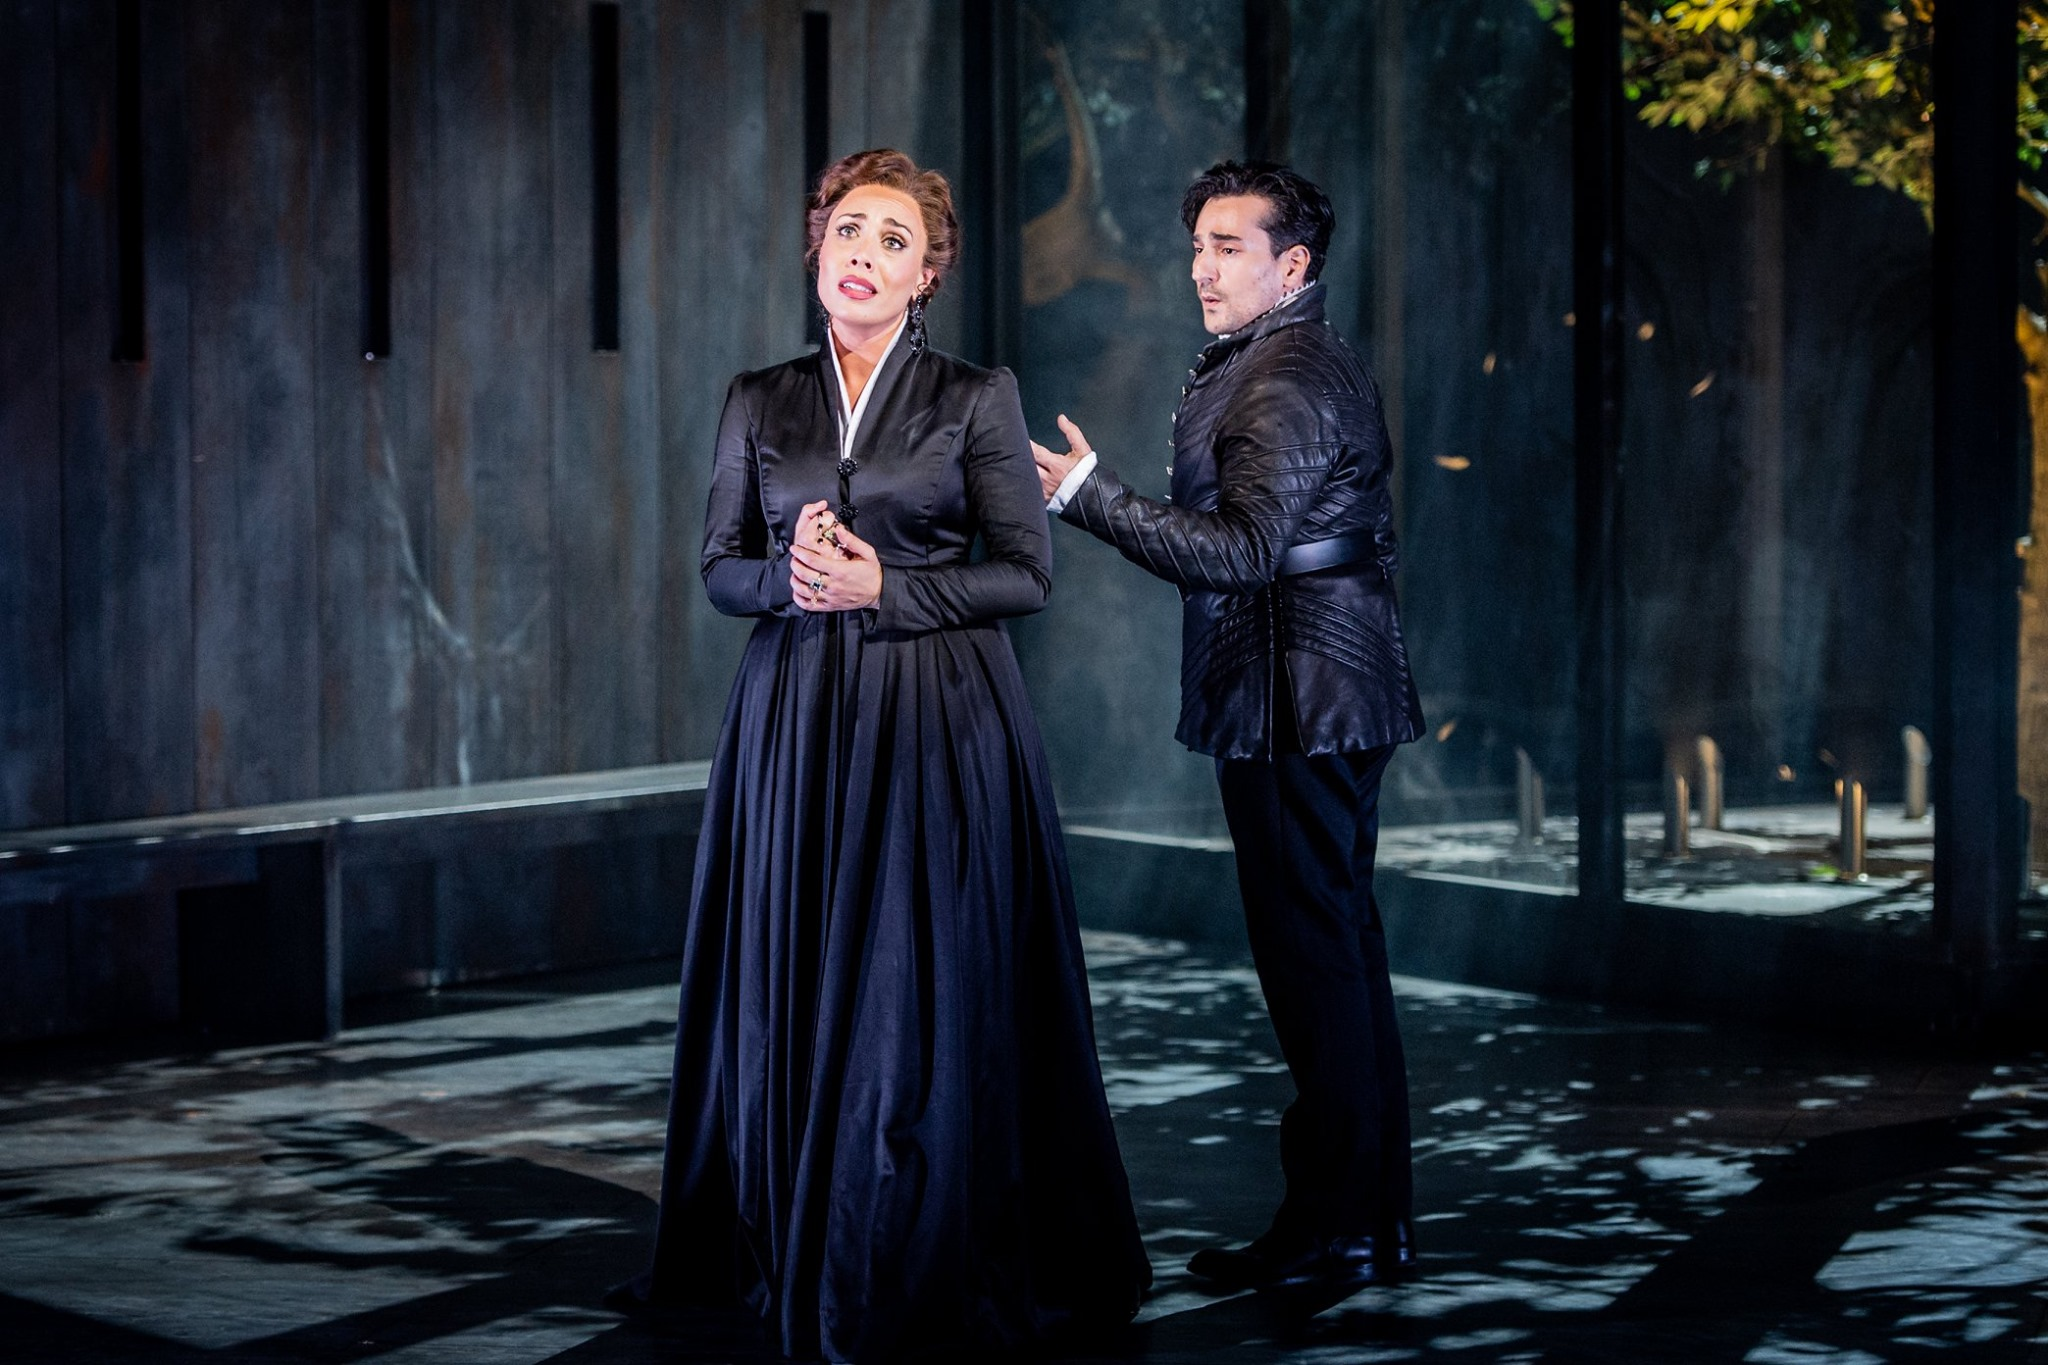 Leonardo Capalbo as Don Carlo and Marina Costa-Jackson as Elizabetta. Photo by Robert Workman.